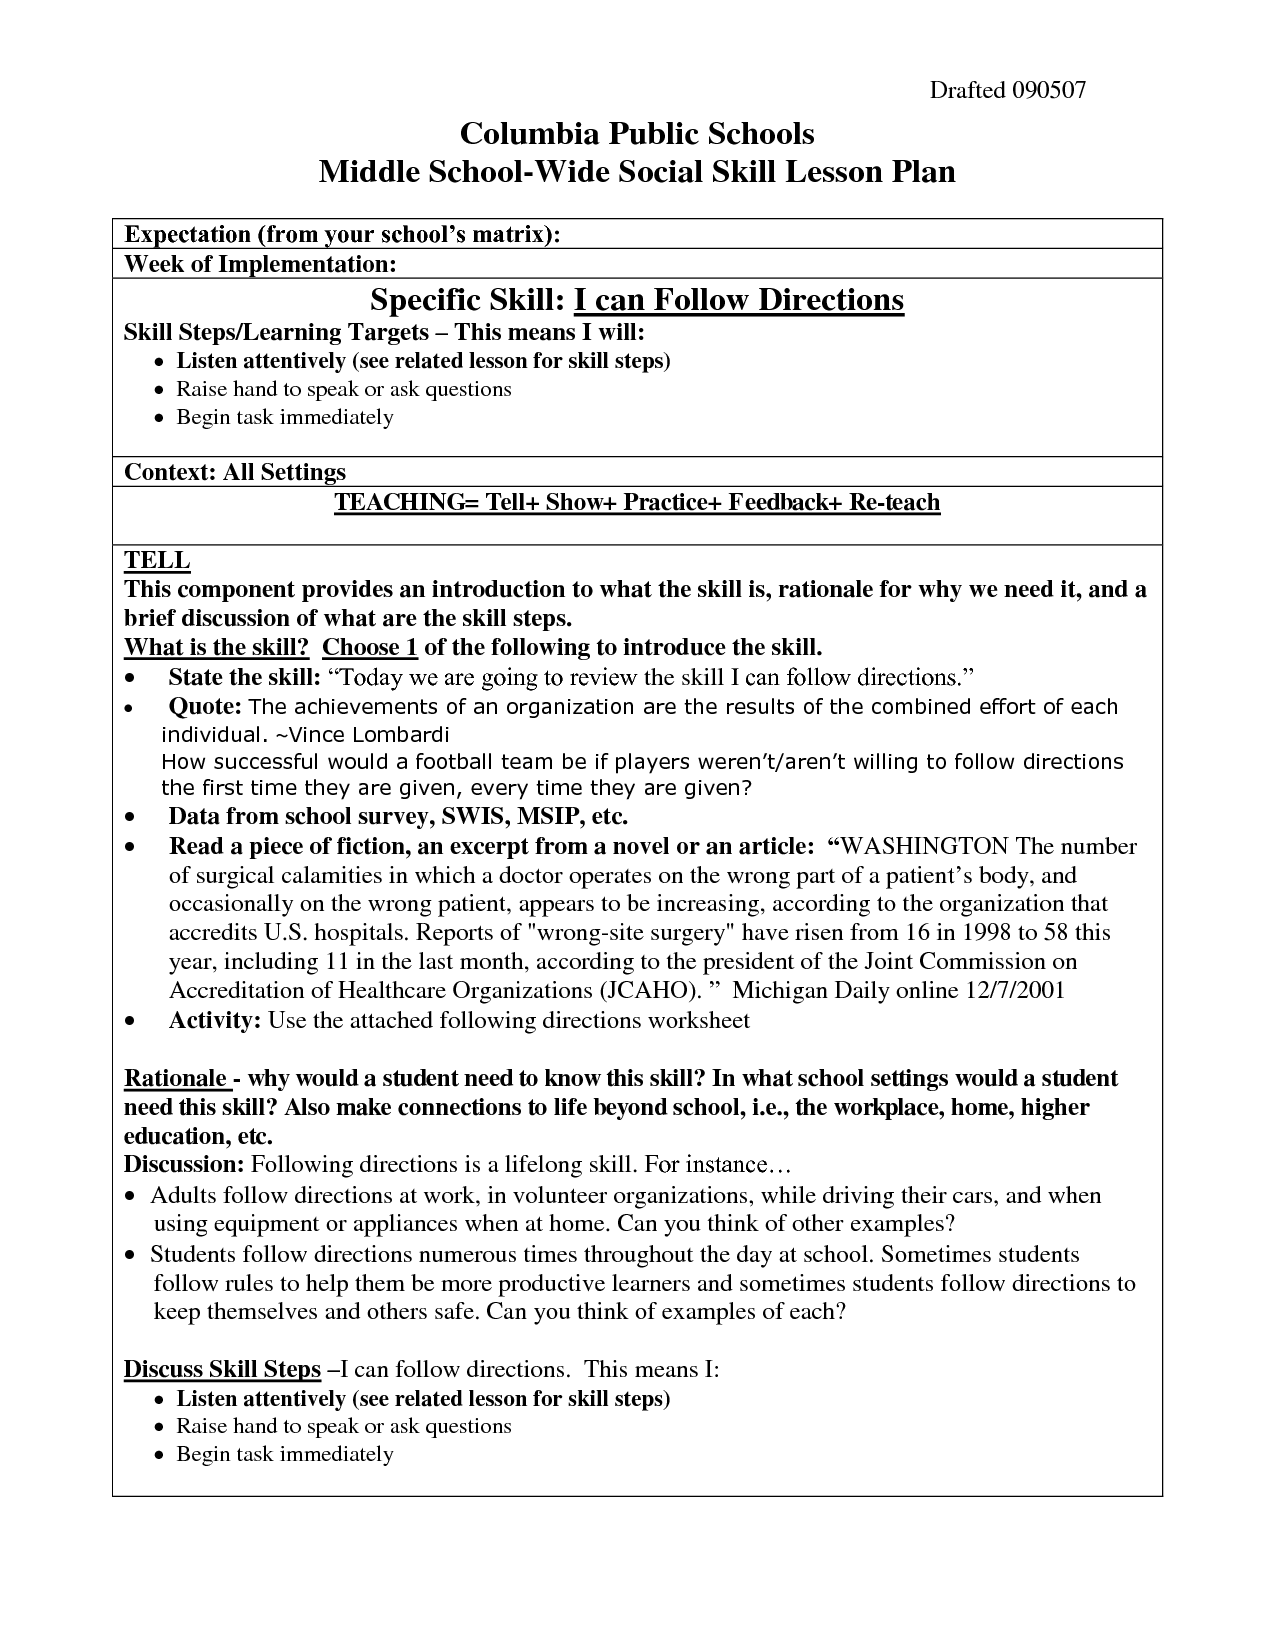 Following Directions Worksheet Trick High School